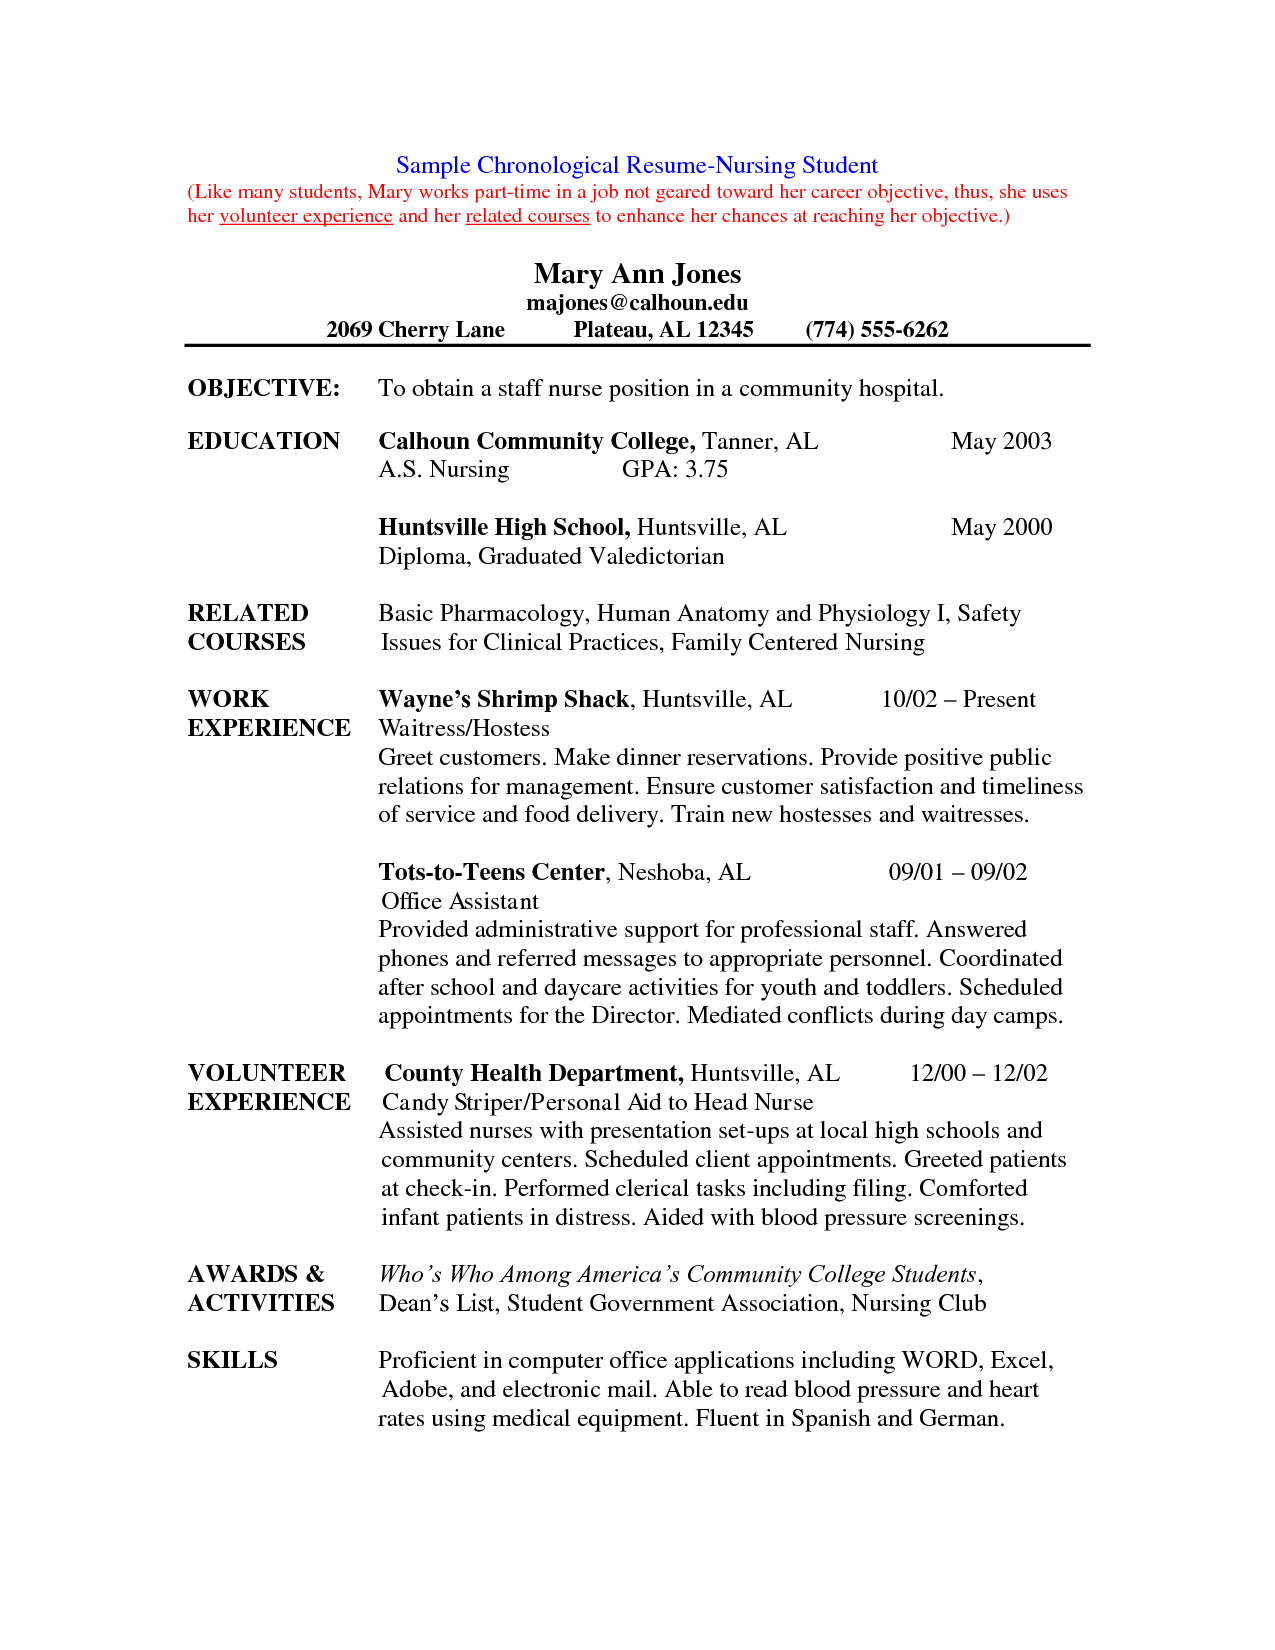 Cover Letters For Nursing Job Application Pdf | Nursing ...